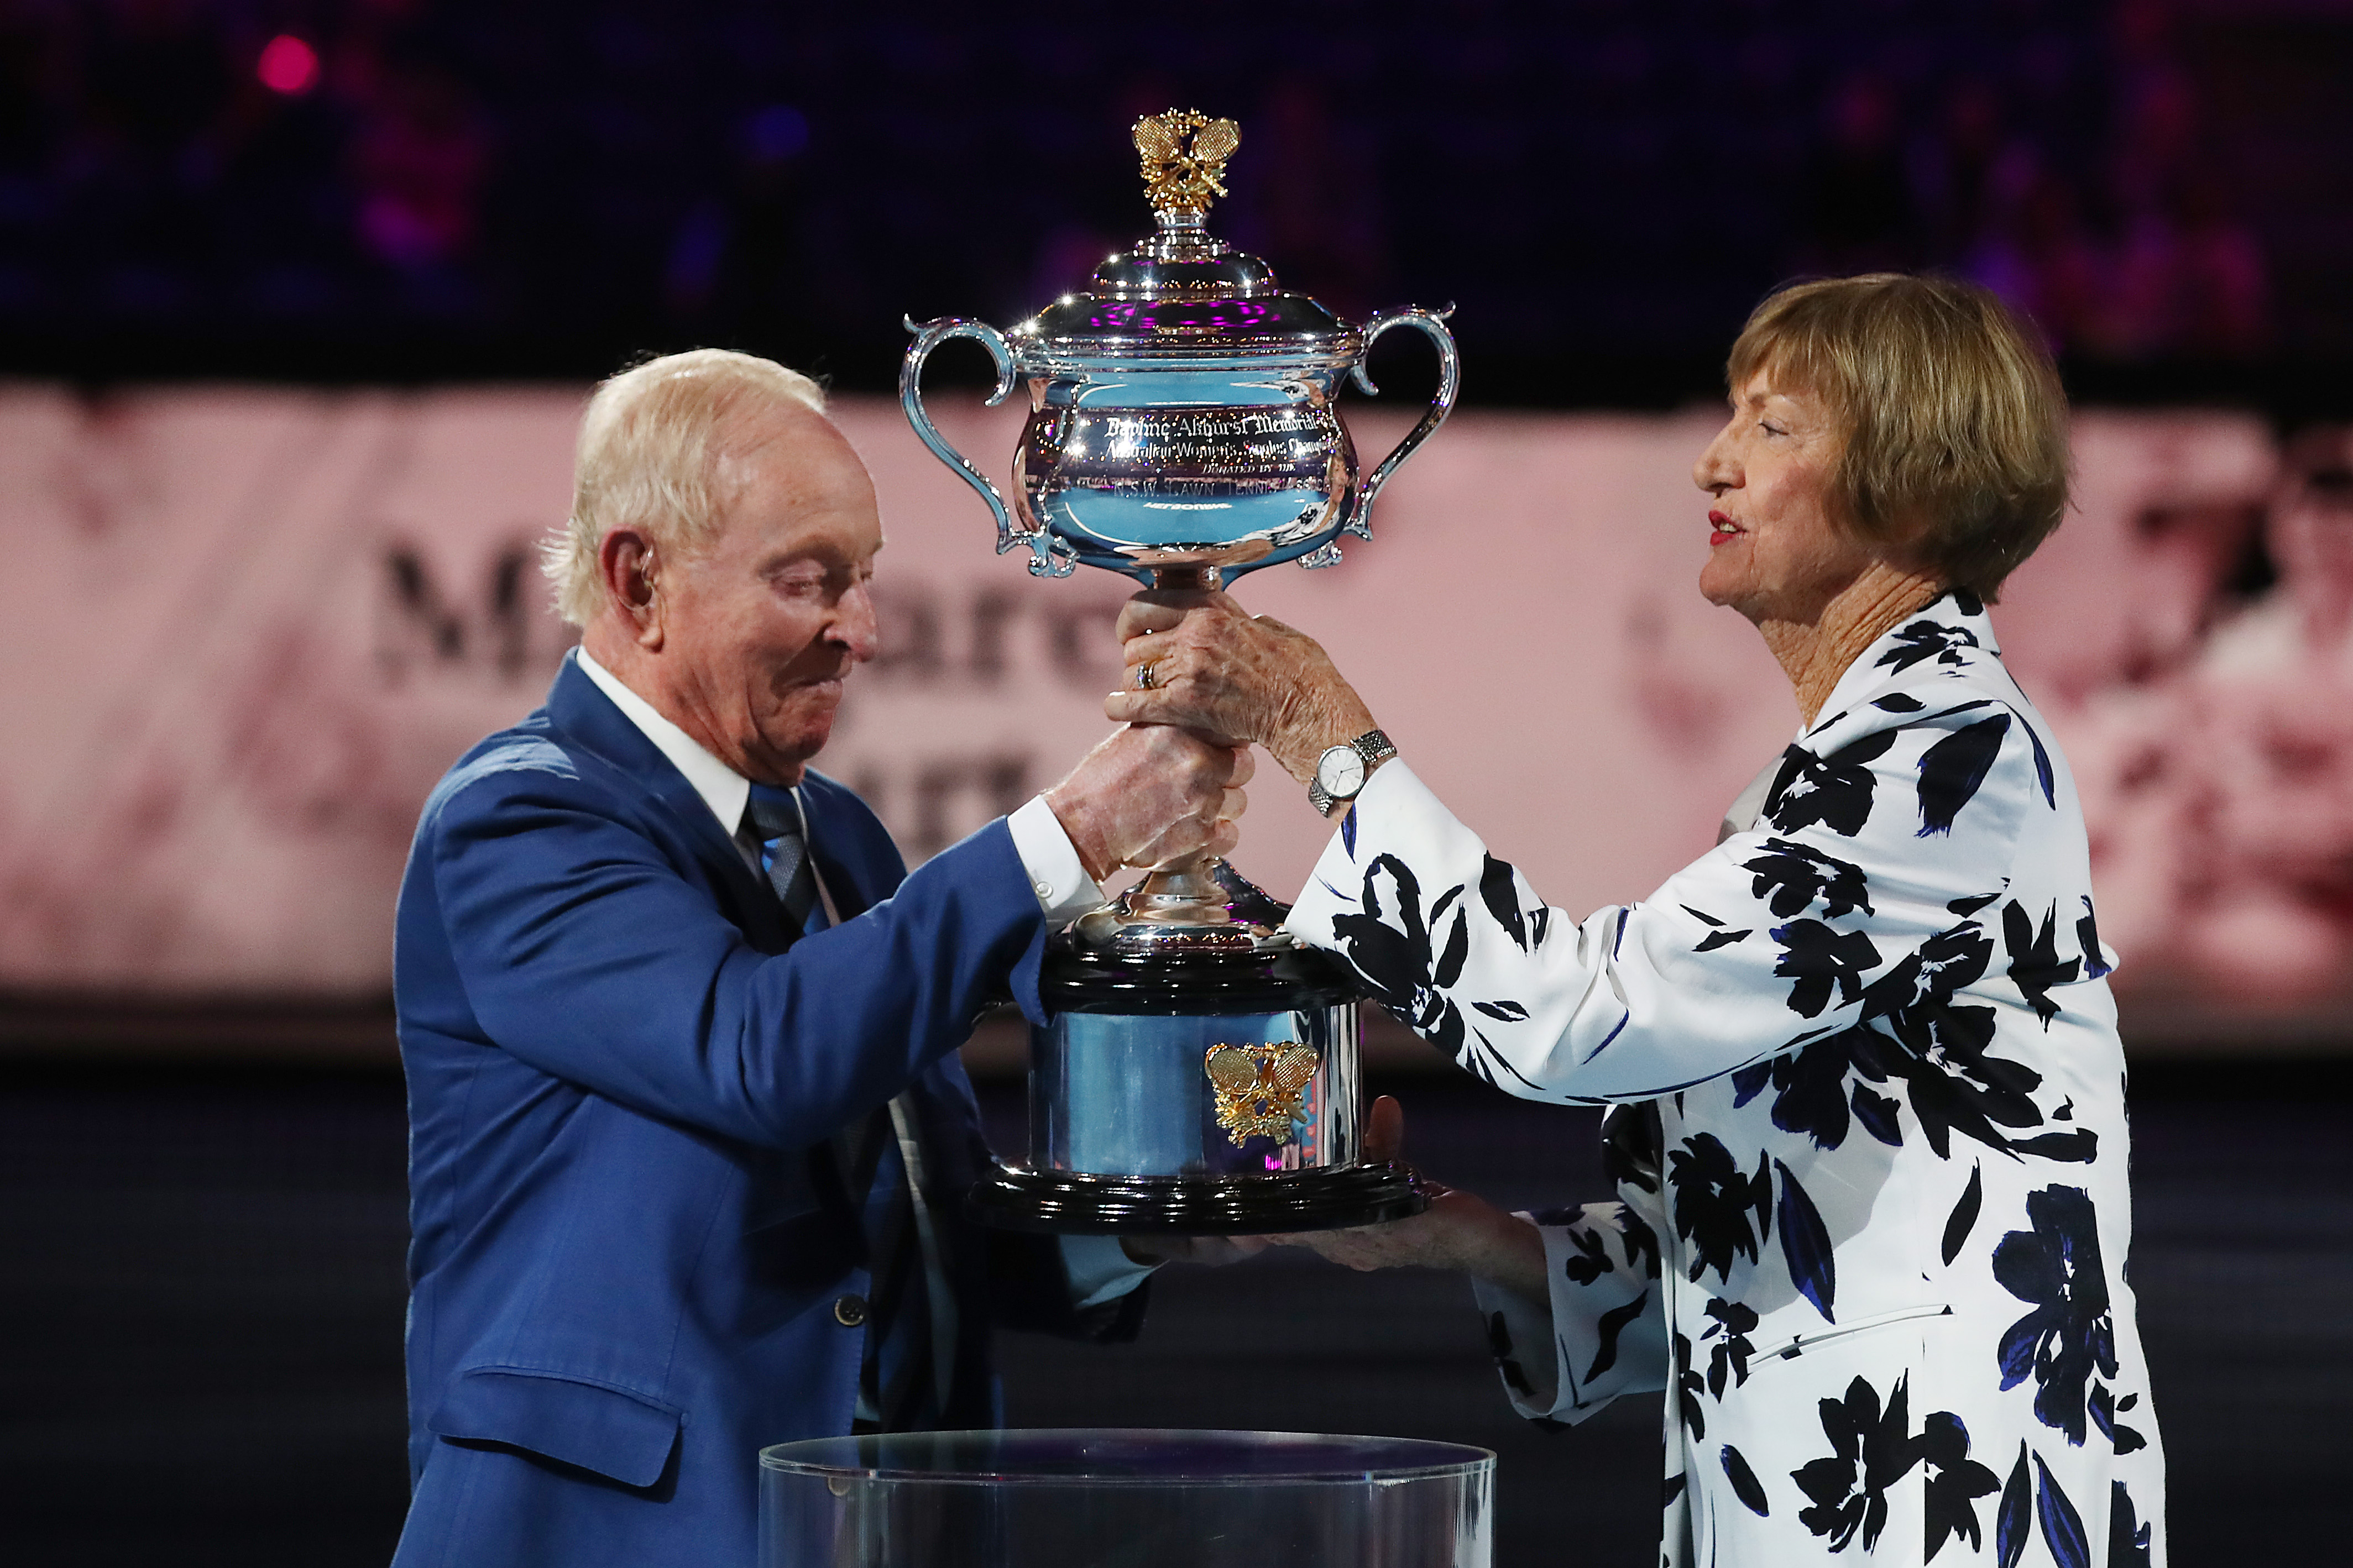 John McEnroe mocks 'crazy aunt' Margaret Court on her 50th anniversary celebration